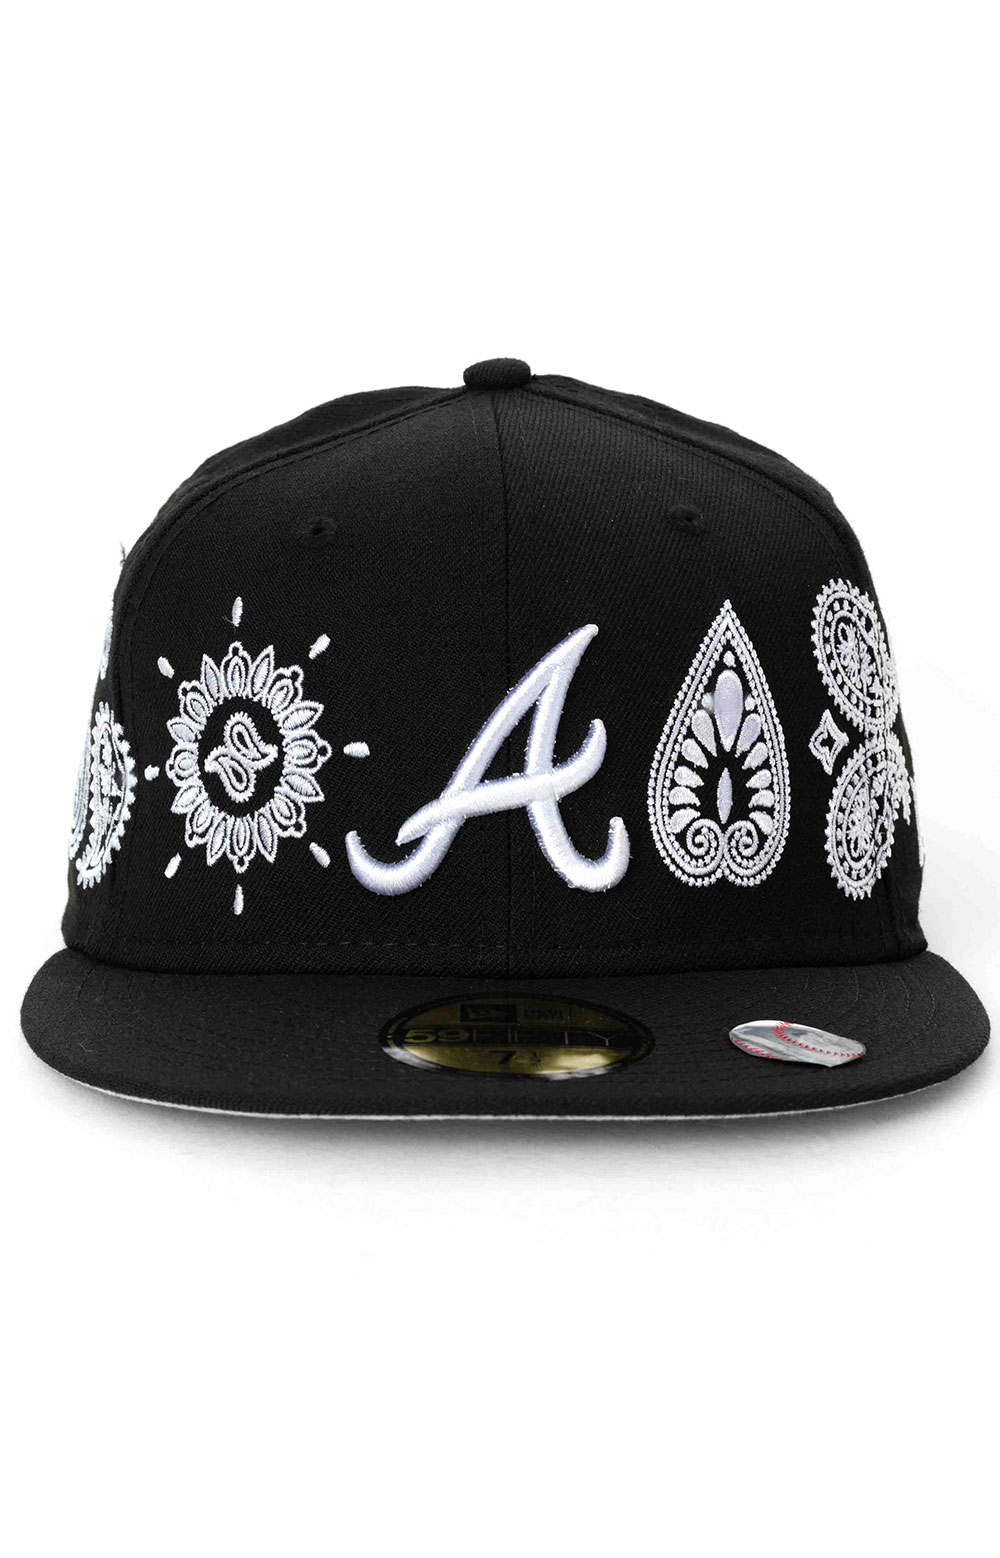 Atlanta Braves Paisley Elements 59Fifty Fitted Hat - Black  2